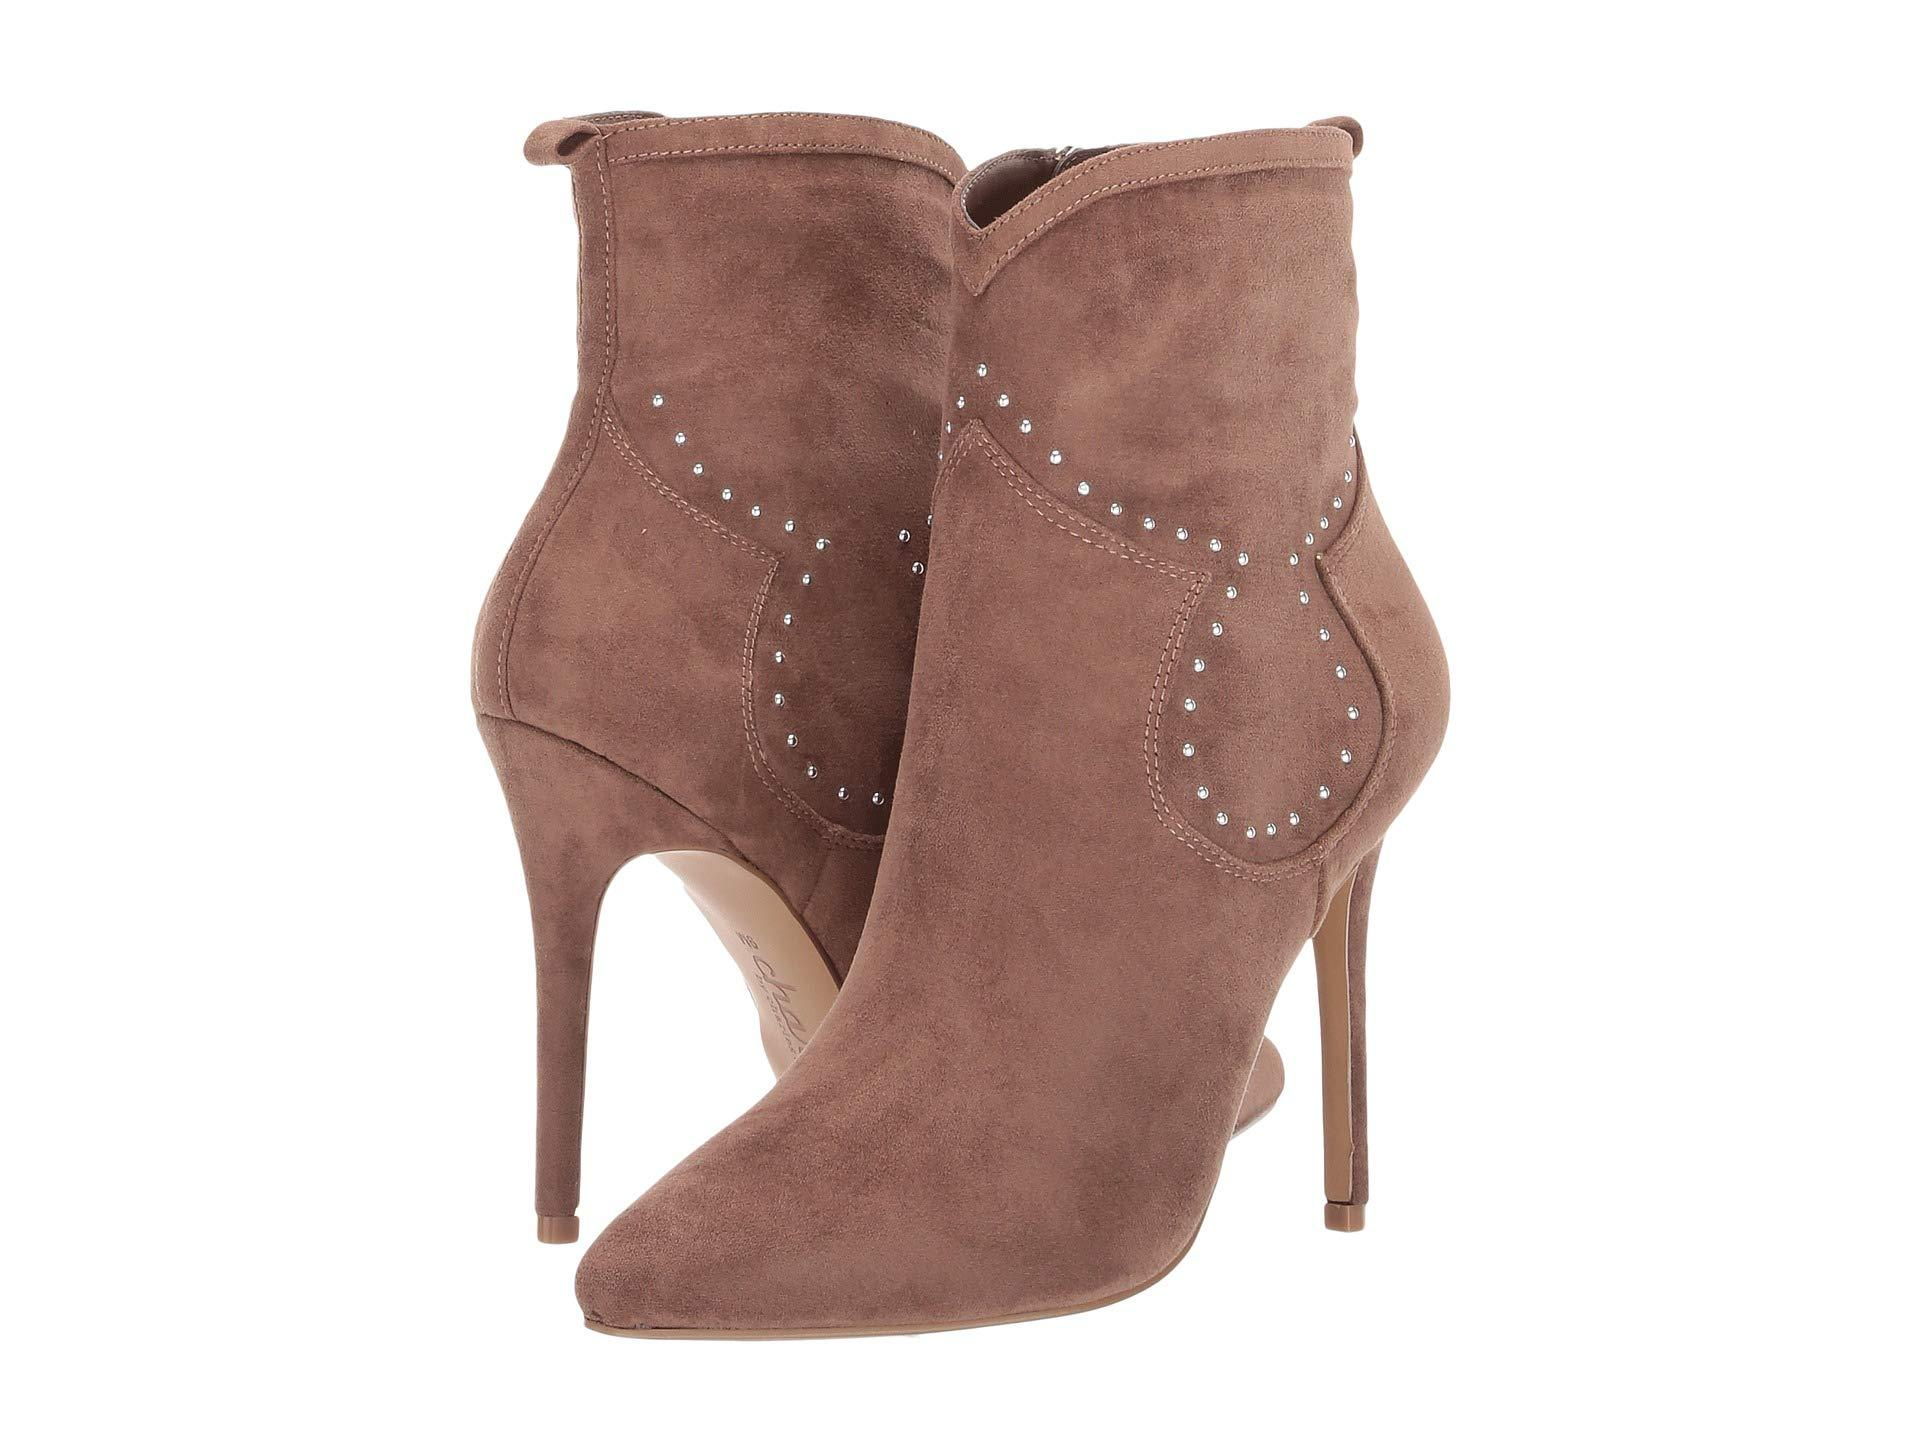 9fb0f1f2ab9 Lyst - Charles David Plot Ankle Bootie in Brown - Save 29%